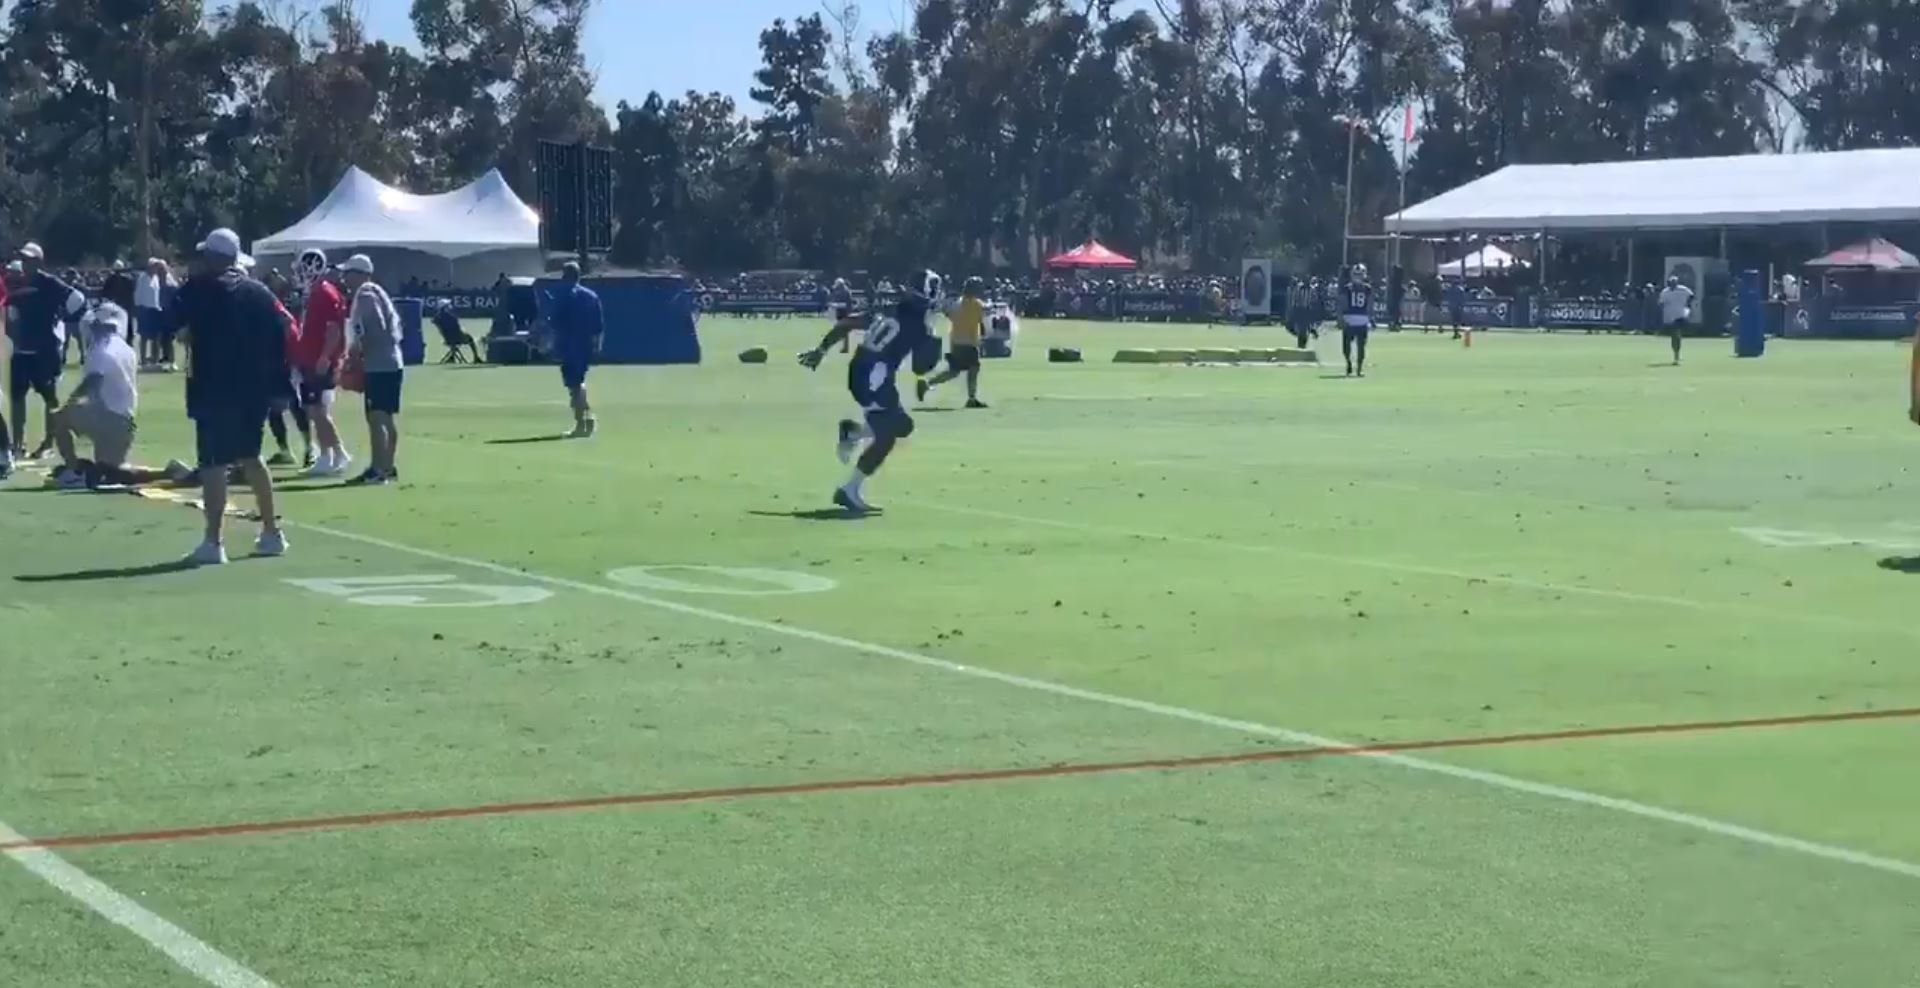 Los Angeles Rams RB Todd Gurley takes a handoff from QB Jared Goff, Jul. 27, 2019.